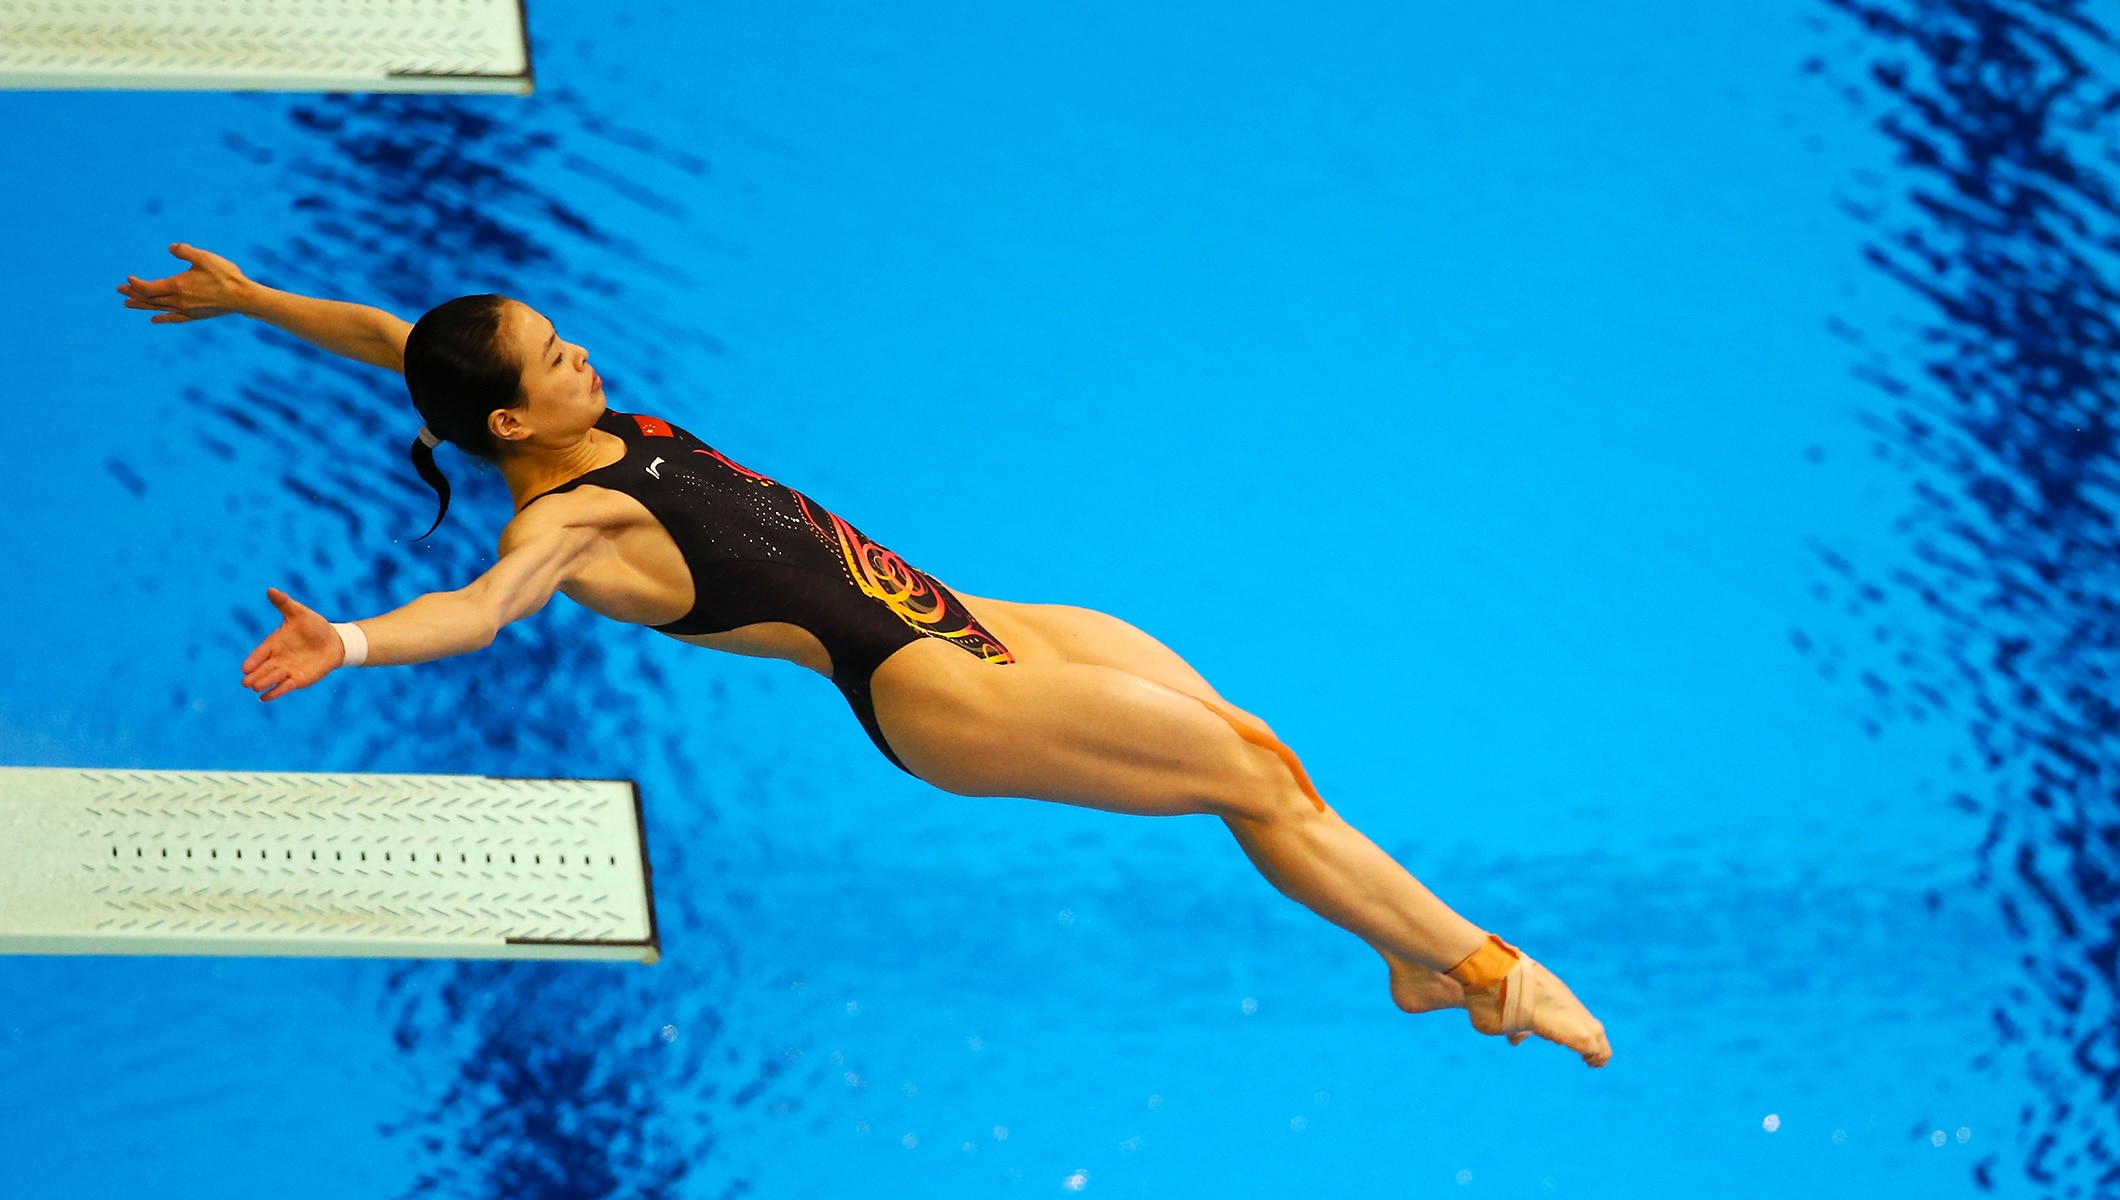 Wu Minxia performs a dive